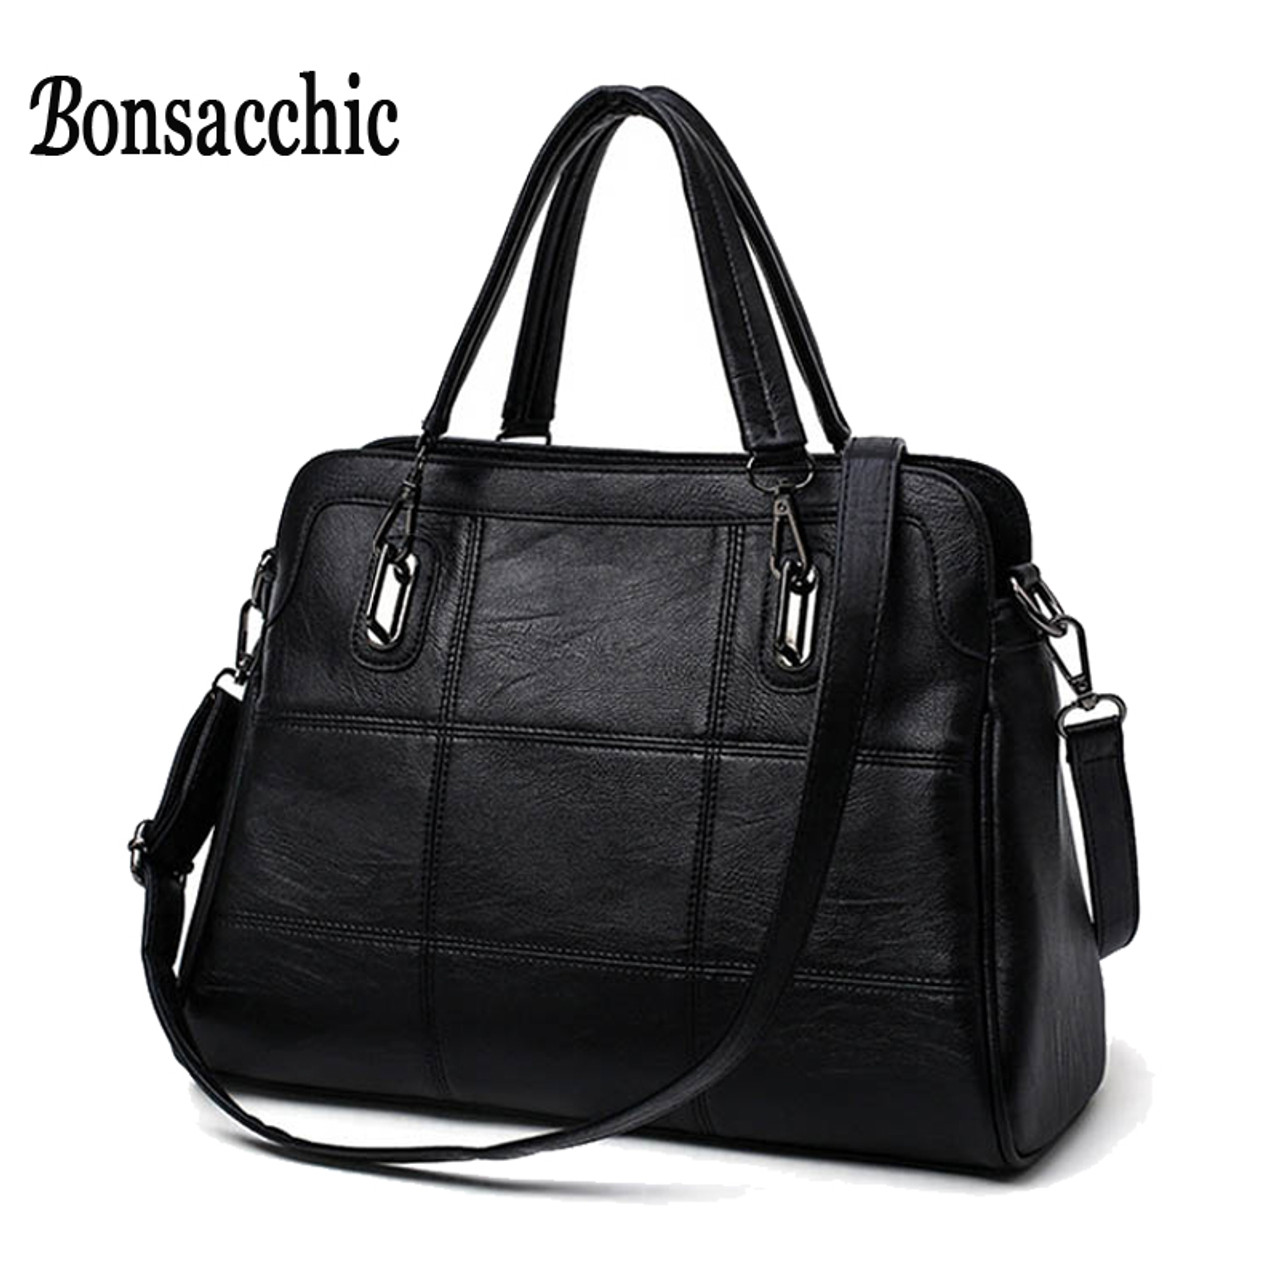 31c4bd2384a Bonsacchic Fashion Ladies Hand Bag Women s Genuine Leather Handbag Black Leather  Tote Bag Bolsas femininas Female Shoulder Bag - OnshopDeals.Com